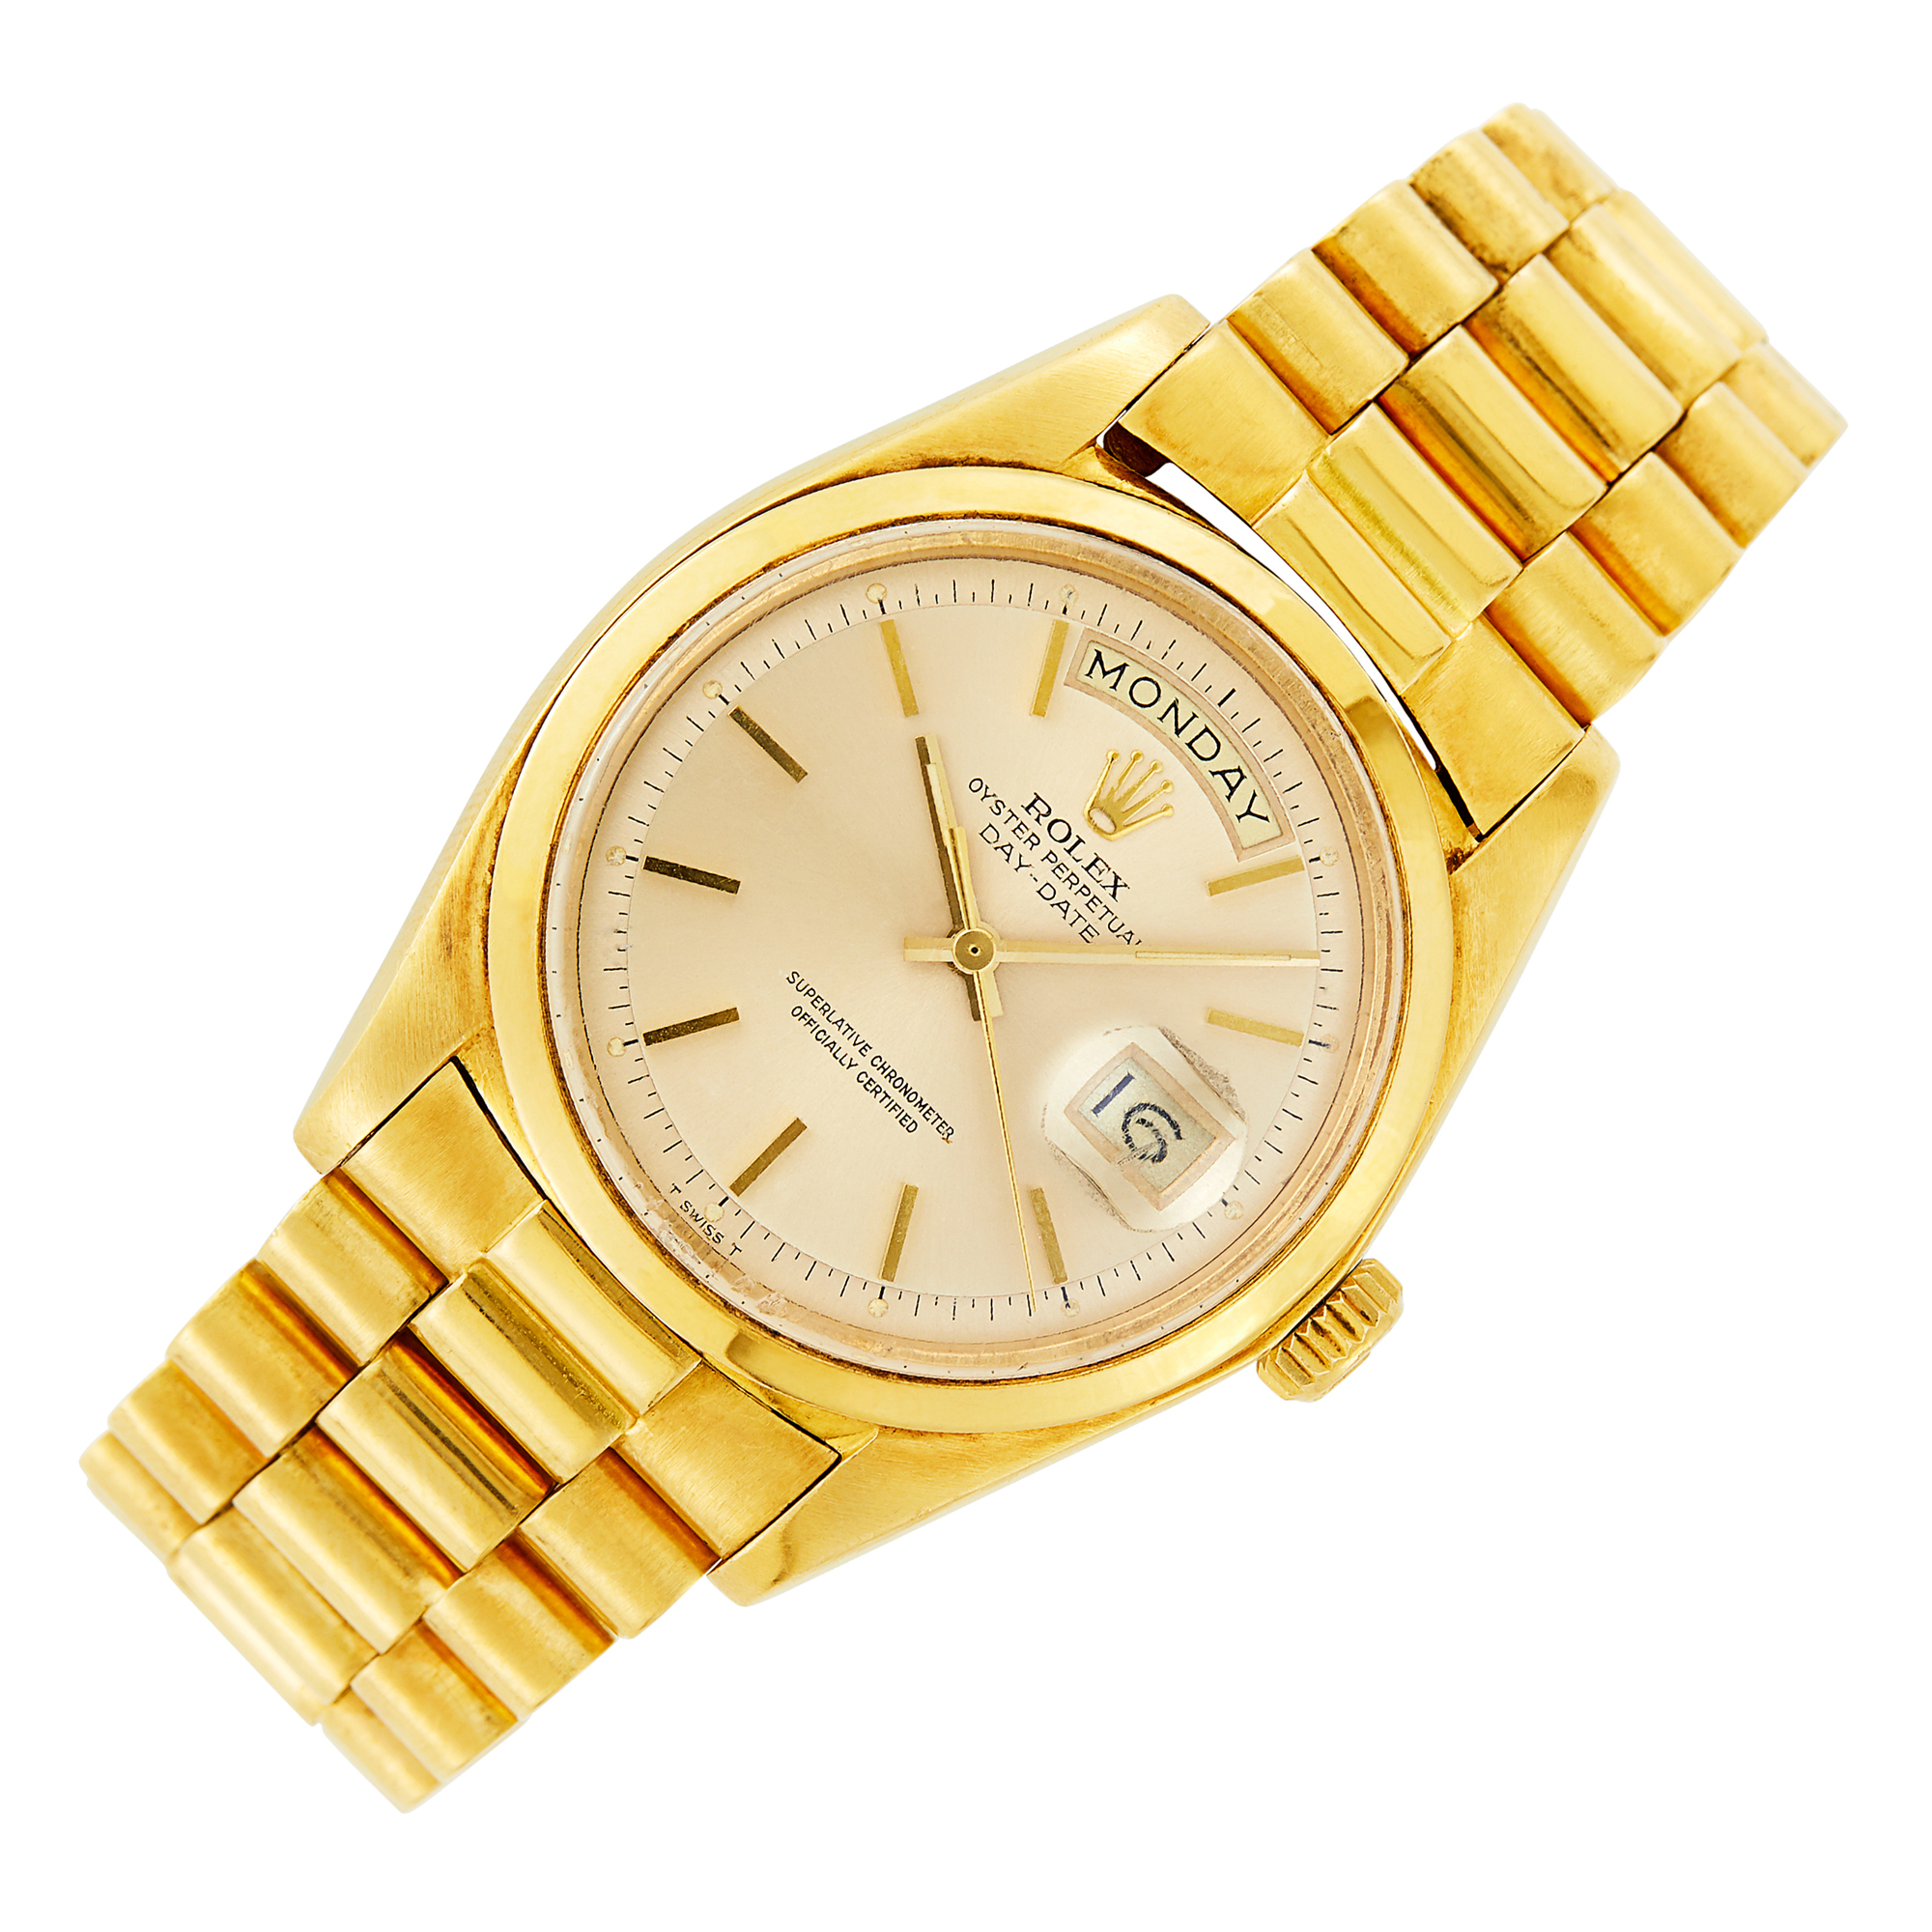 Lot image - Gentlemans Rolex Gold Oyster Perpetual Day-Date Wristwatch, Ref. 1802